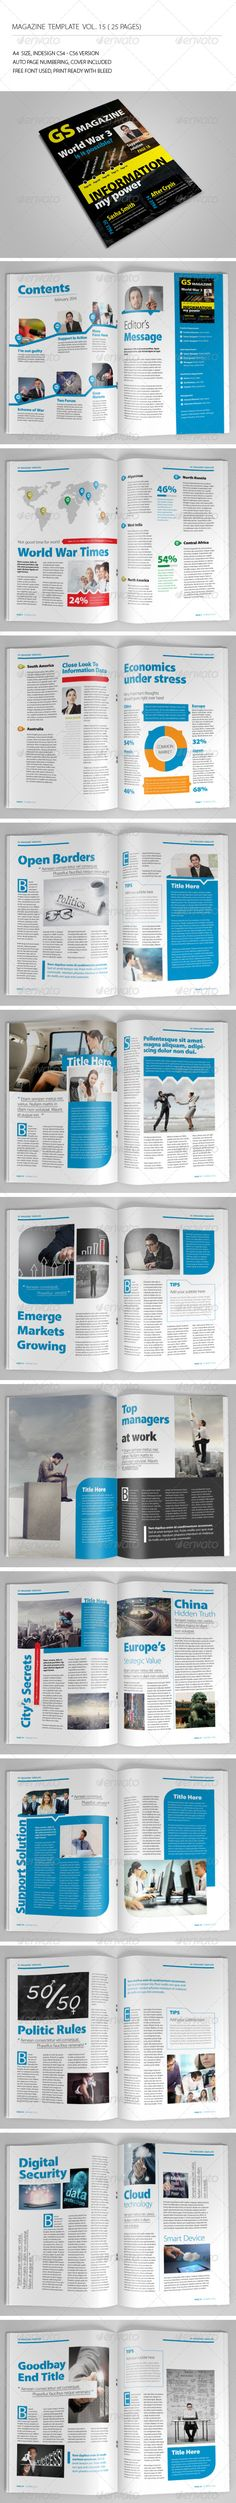 25 Pages Magazine Template Vol15: This item consist of 25 pages that fully editable and customizable.Detail :25 pages Size A4 (8.2